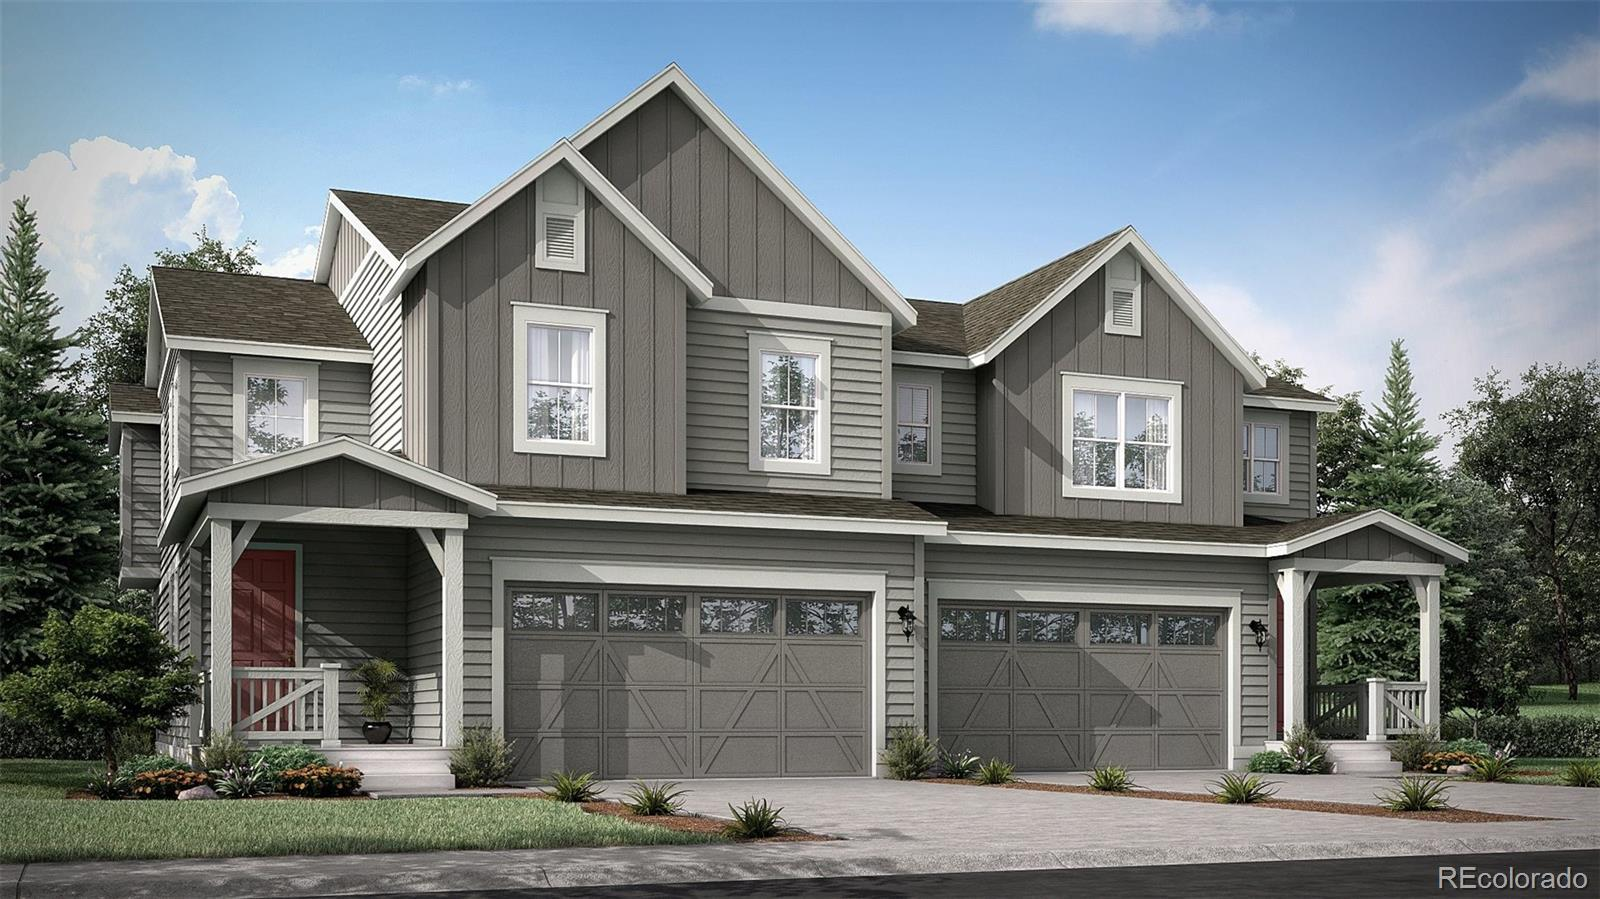 Available December 2021!  Brand new paired home in Buffalo Highlands.  Gorgeous Meridian 2 story features 3 beds, 2.5 baths, great room, open kitchen, dining room, loft, upstairs laundry, 2 car garage, full unfinished basement for future expansion. Beautiful upgrades and finishes. This is the largest paired home plan with an amazing kitchen w/walk-in pantry plus walk-in closets in all bedrooms. Buffalo Highlands is a new Lennar community providing the best of Colorado living with all the latest technology.  Lennar provides the latest in energy efficiency & state of the art technology with several fabulous floorplans to choose from.  Energy efficiency, and technology/connectivity seamlessly blended with luxury to make your new house a home.  What some builders consider high-end upgrades, Lennar makes a standard inclusion. You will not be disappointed. This community offers single family and paired homes for every lifestyle.  Close to dining, shopping, entertainment and other amenities. Easy commute to DIA, E-470, Downtown Denver, Golden, Boulder & beyond.  Don't wait – this is a typically sold out plan and won't last long.